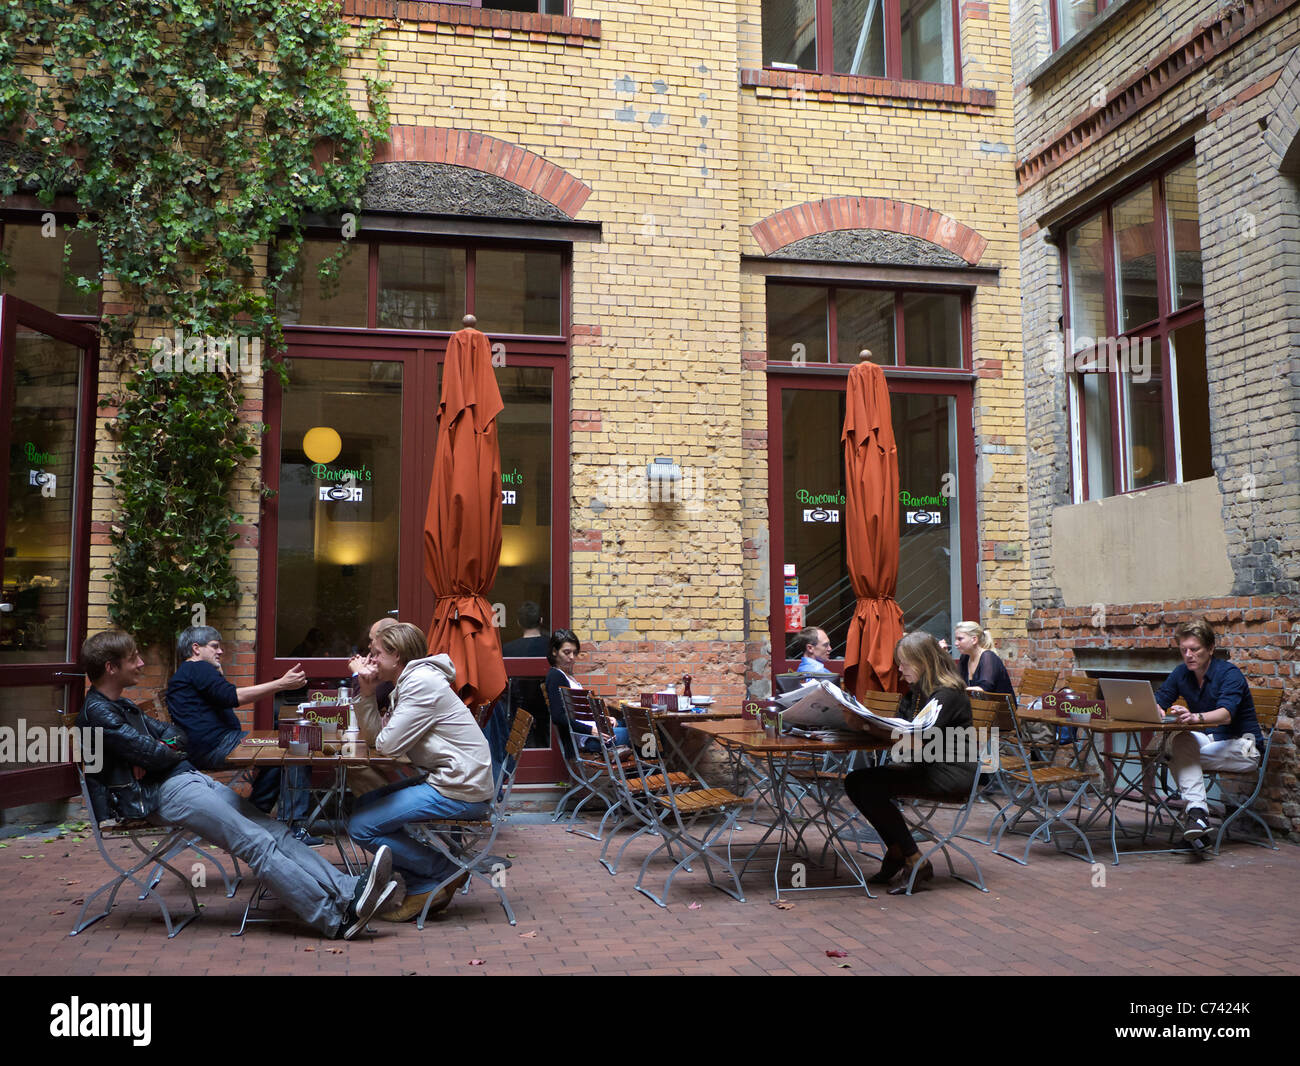 Barcomis cafe in Sophie-Gips courtyard in Mitte district of Berlin in Germany - Stock Image